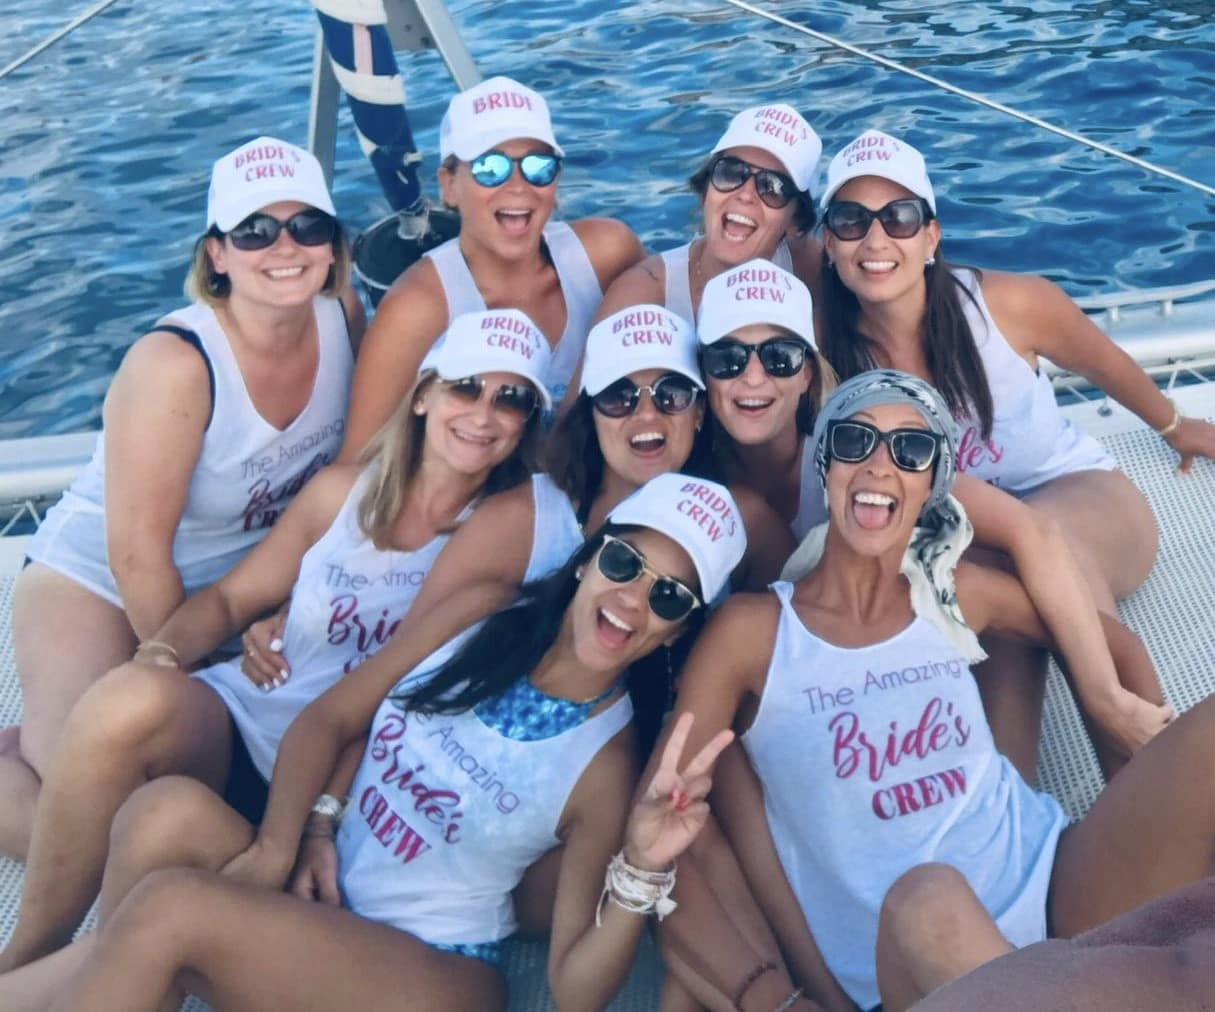 Hen party in Ibiza on catamaran, happy girls on board